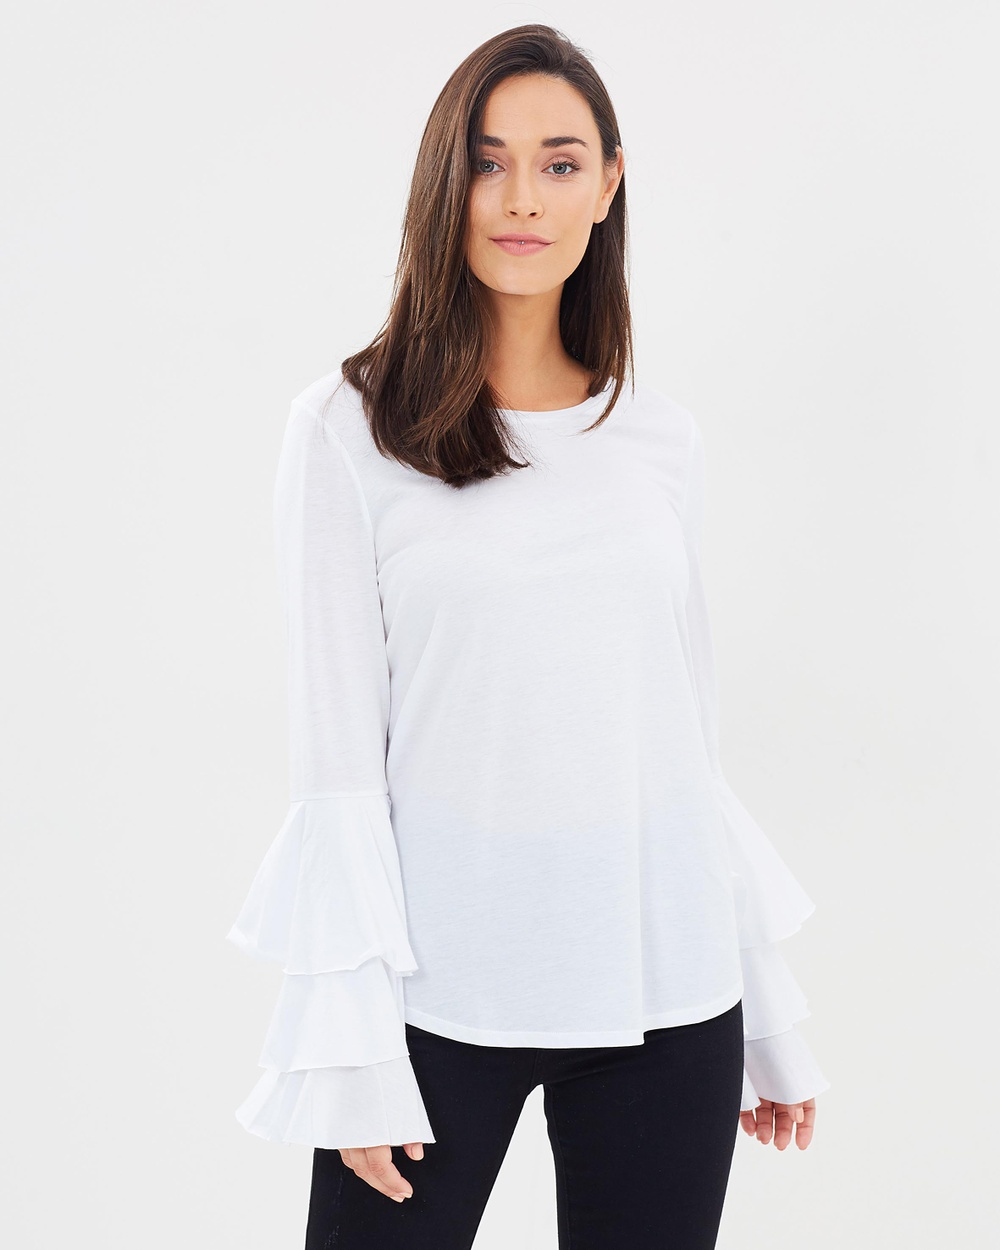 Decjuba Bridgit Ruffle Sleeve Top Tops Bright White Bridgit Ruffle Sleeve Top